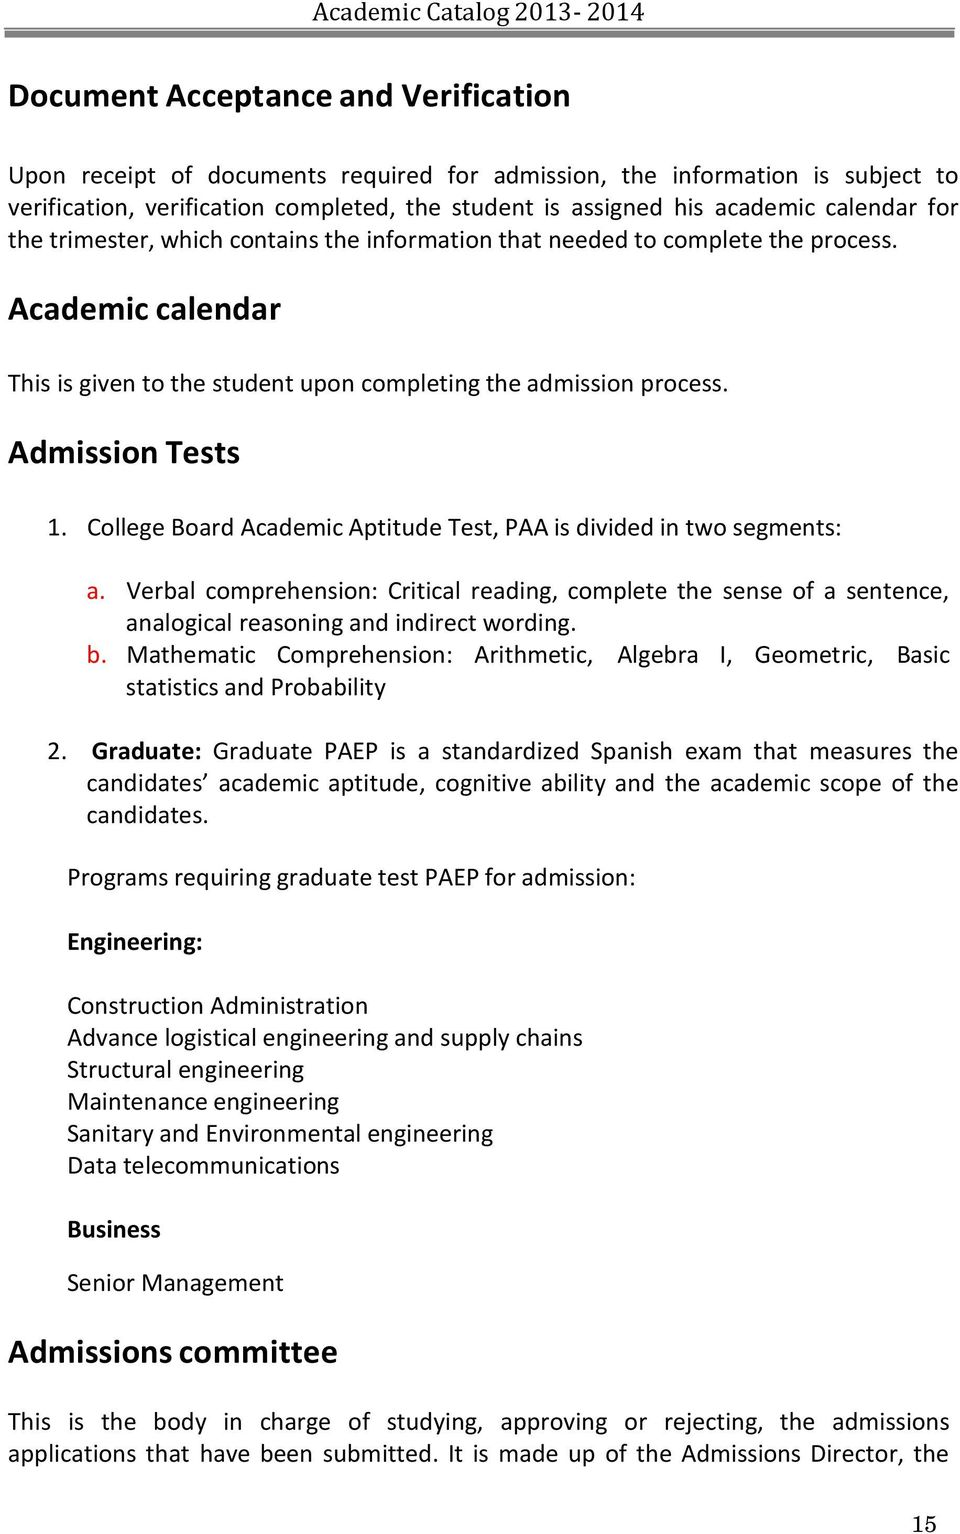 College Board Academic Aptitude Test, PAA is divided in two segments: a. Verbal comprehension: Critical reading, complete the sense of a sentence, analogical reasoning and indirect wording. b.